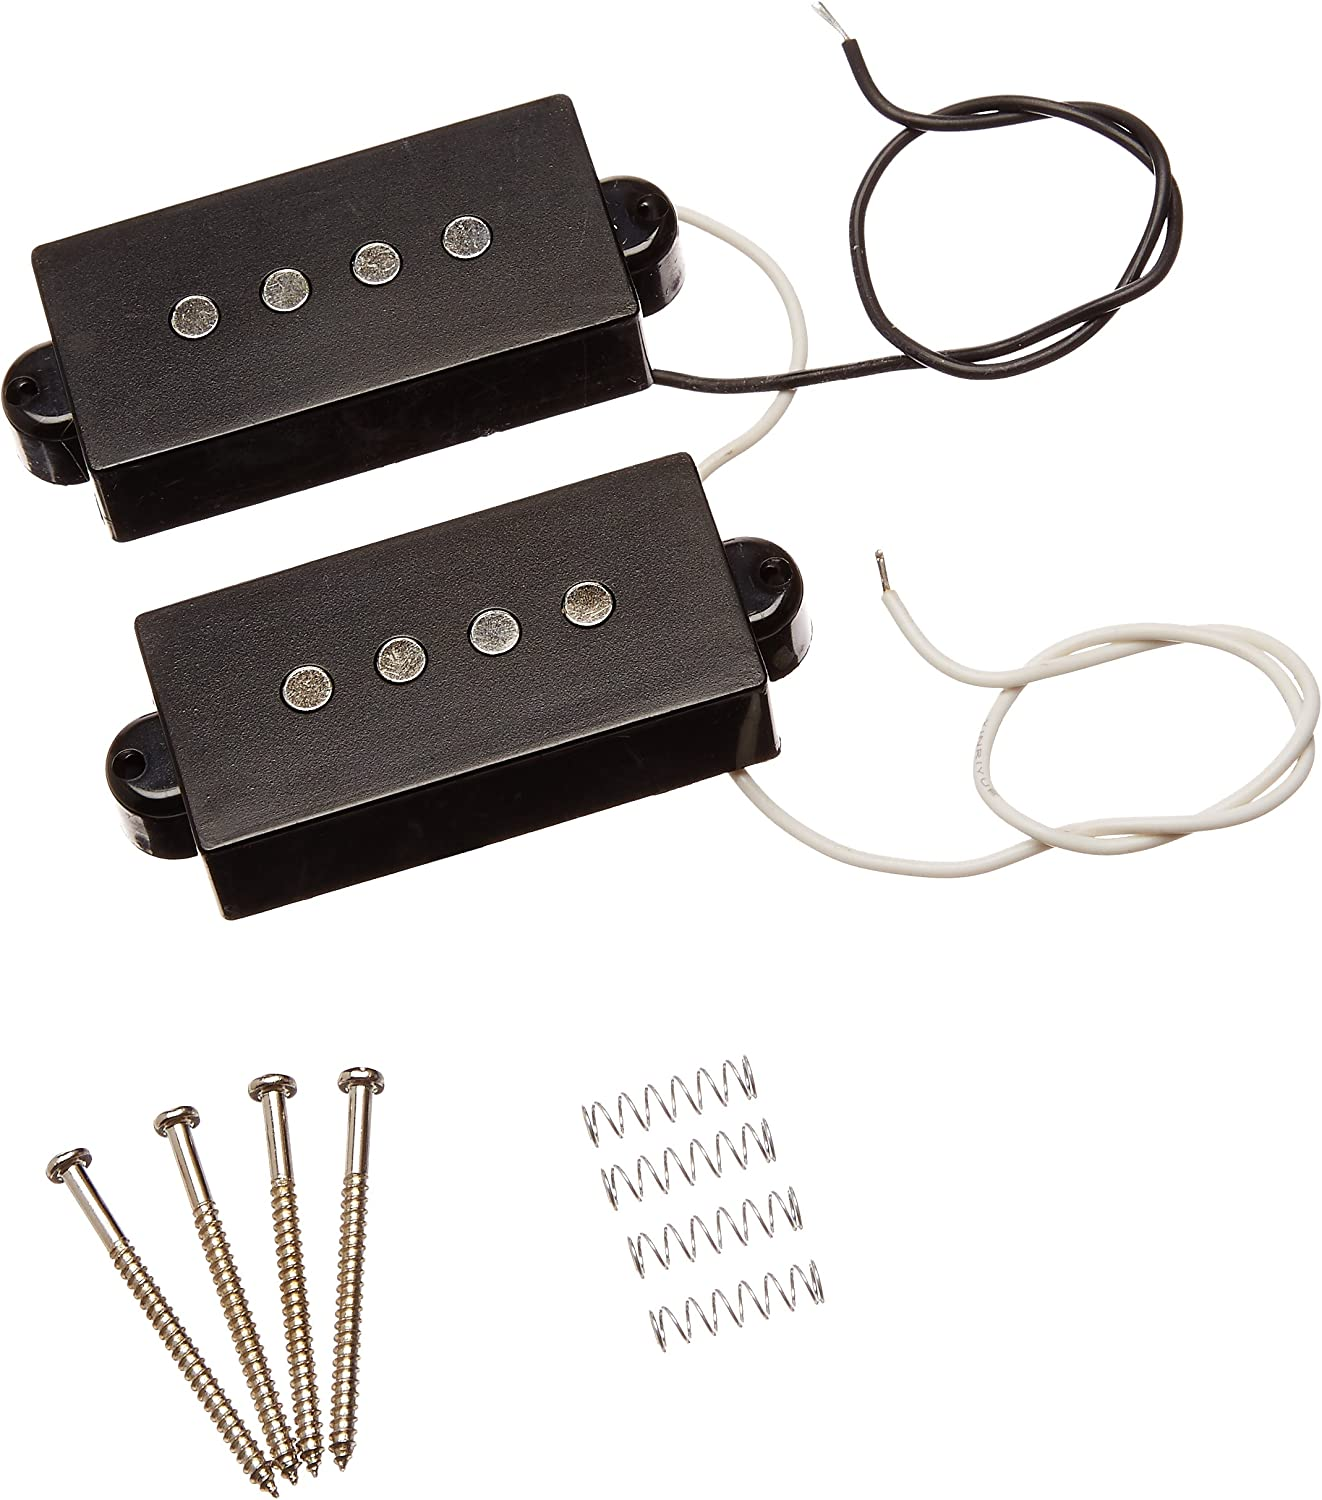 Black 4 String Electric Pickup Humbucker For Precision Bass Guitar 1 Pair From Kmise